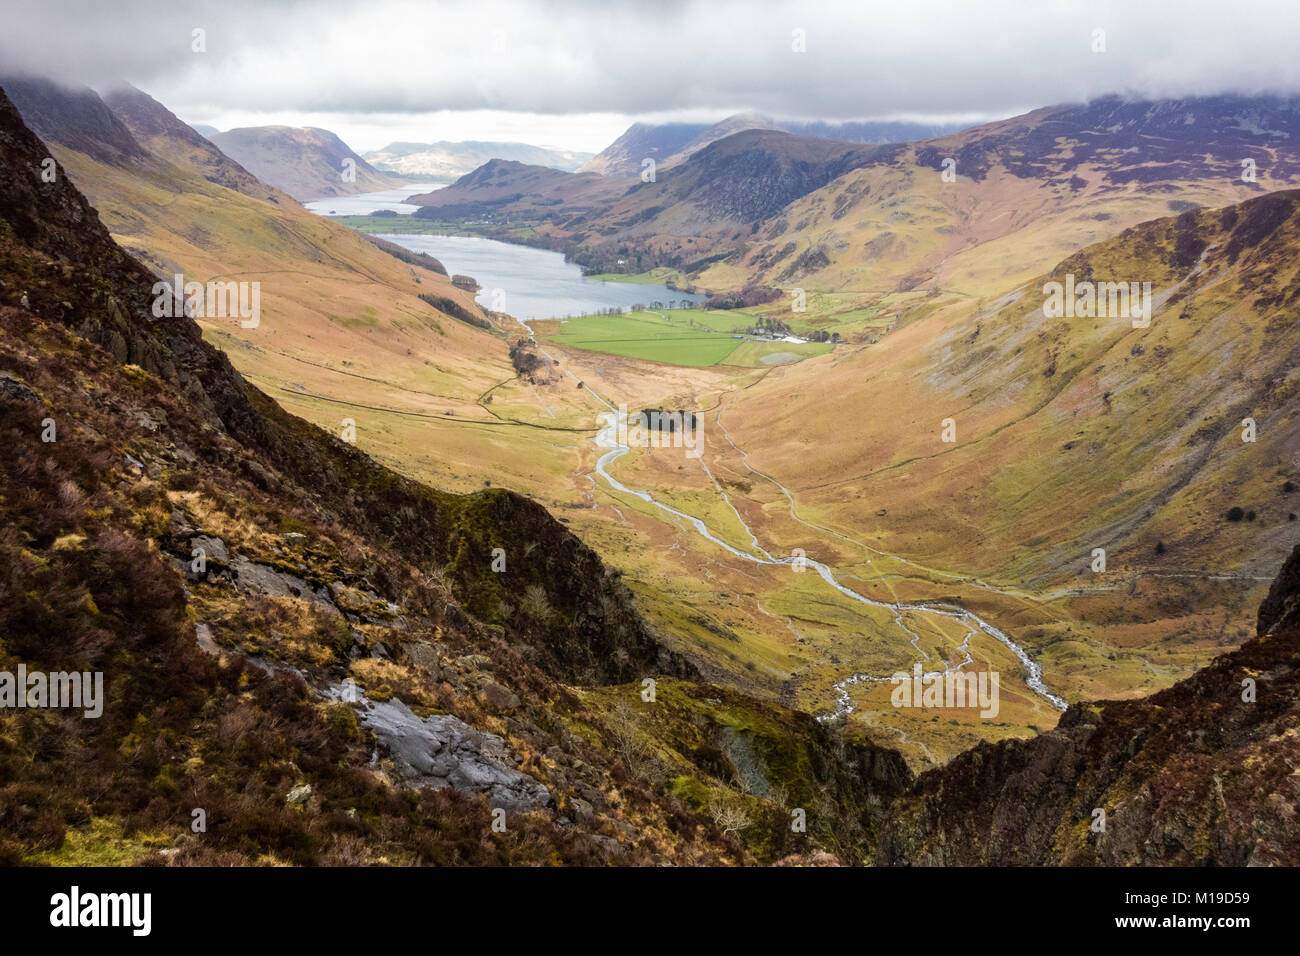 Buttermere and Warnscale Bottom from Green Crag, Haystacks, Lake District, Cumbria, England, UK - Stock Image